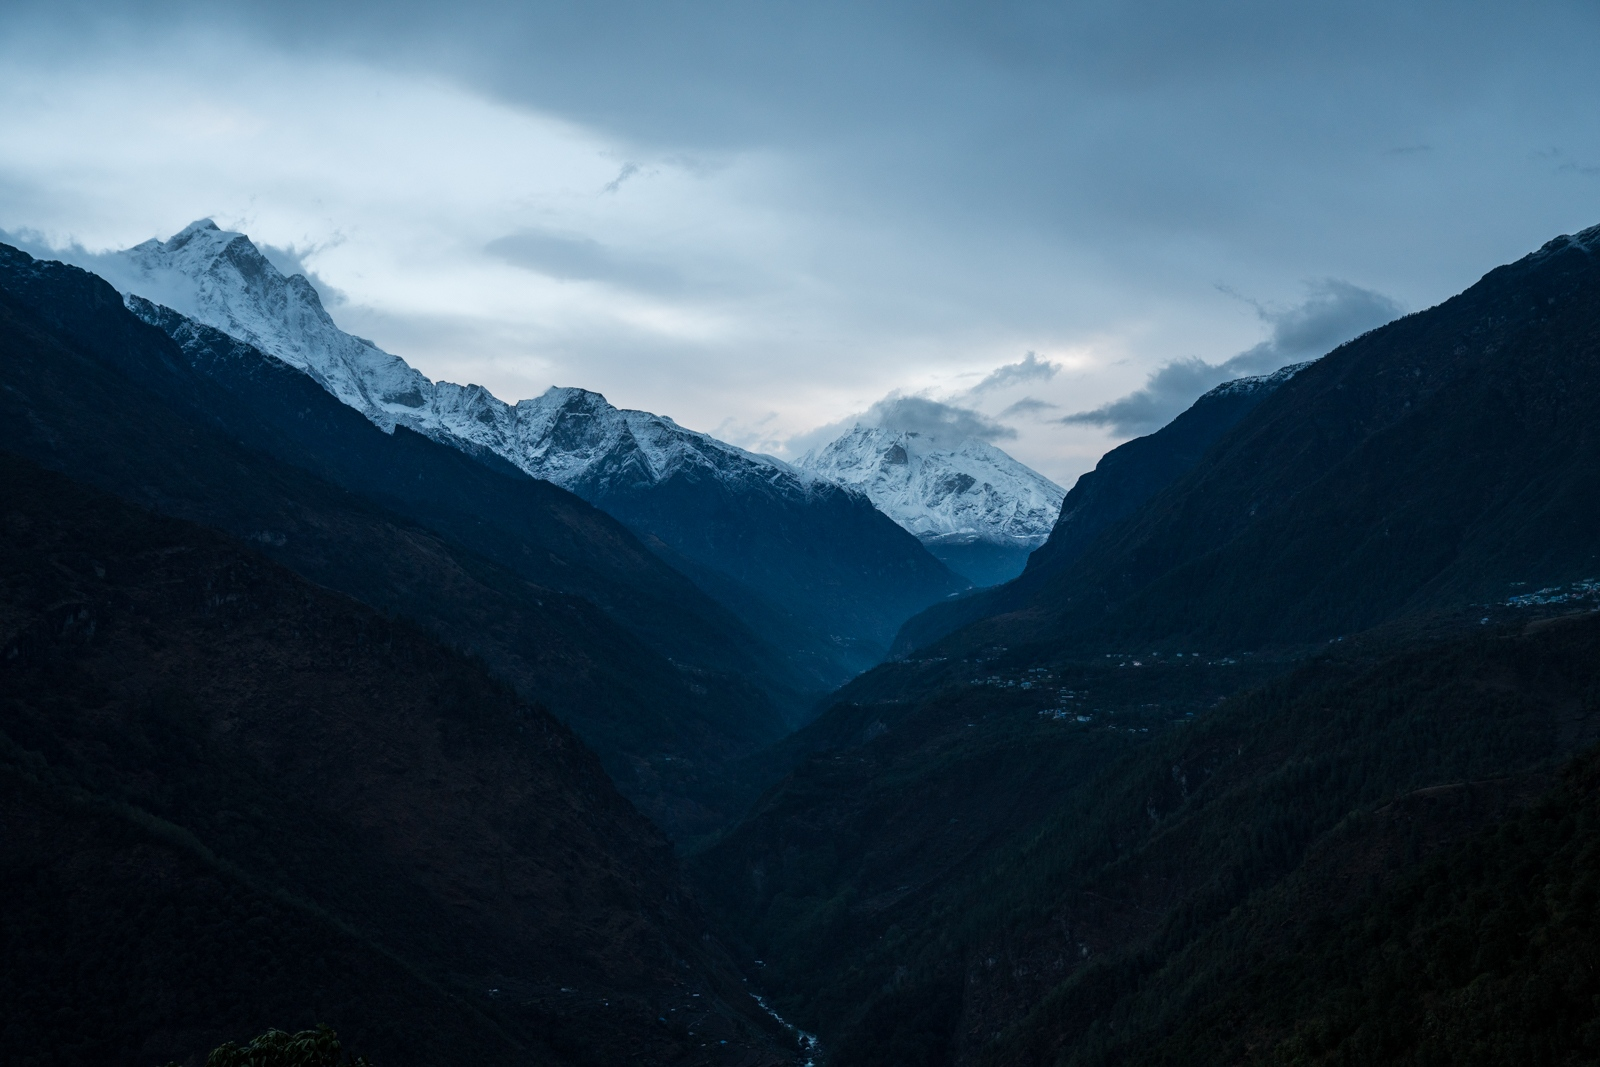 Looking into the Solokhumbu Valley.